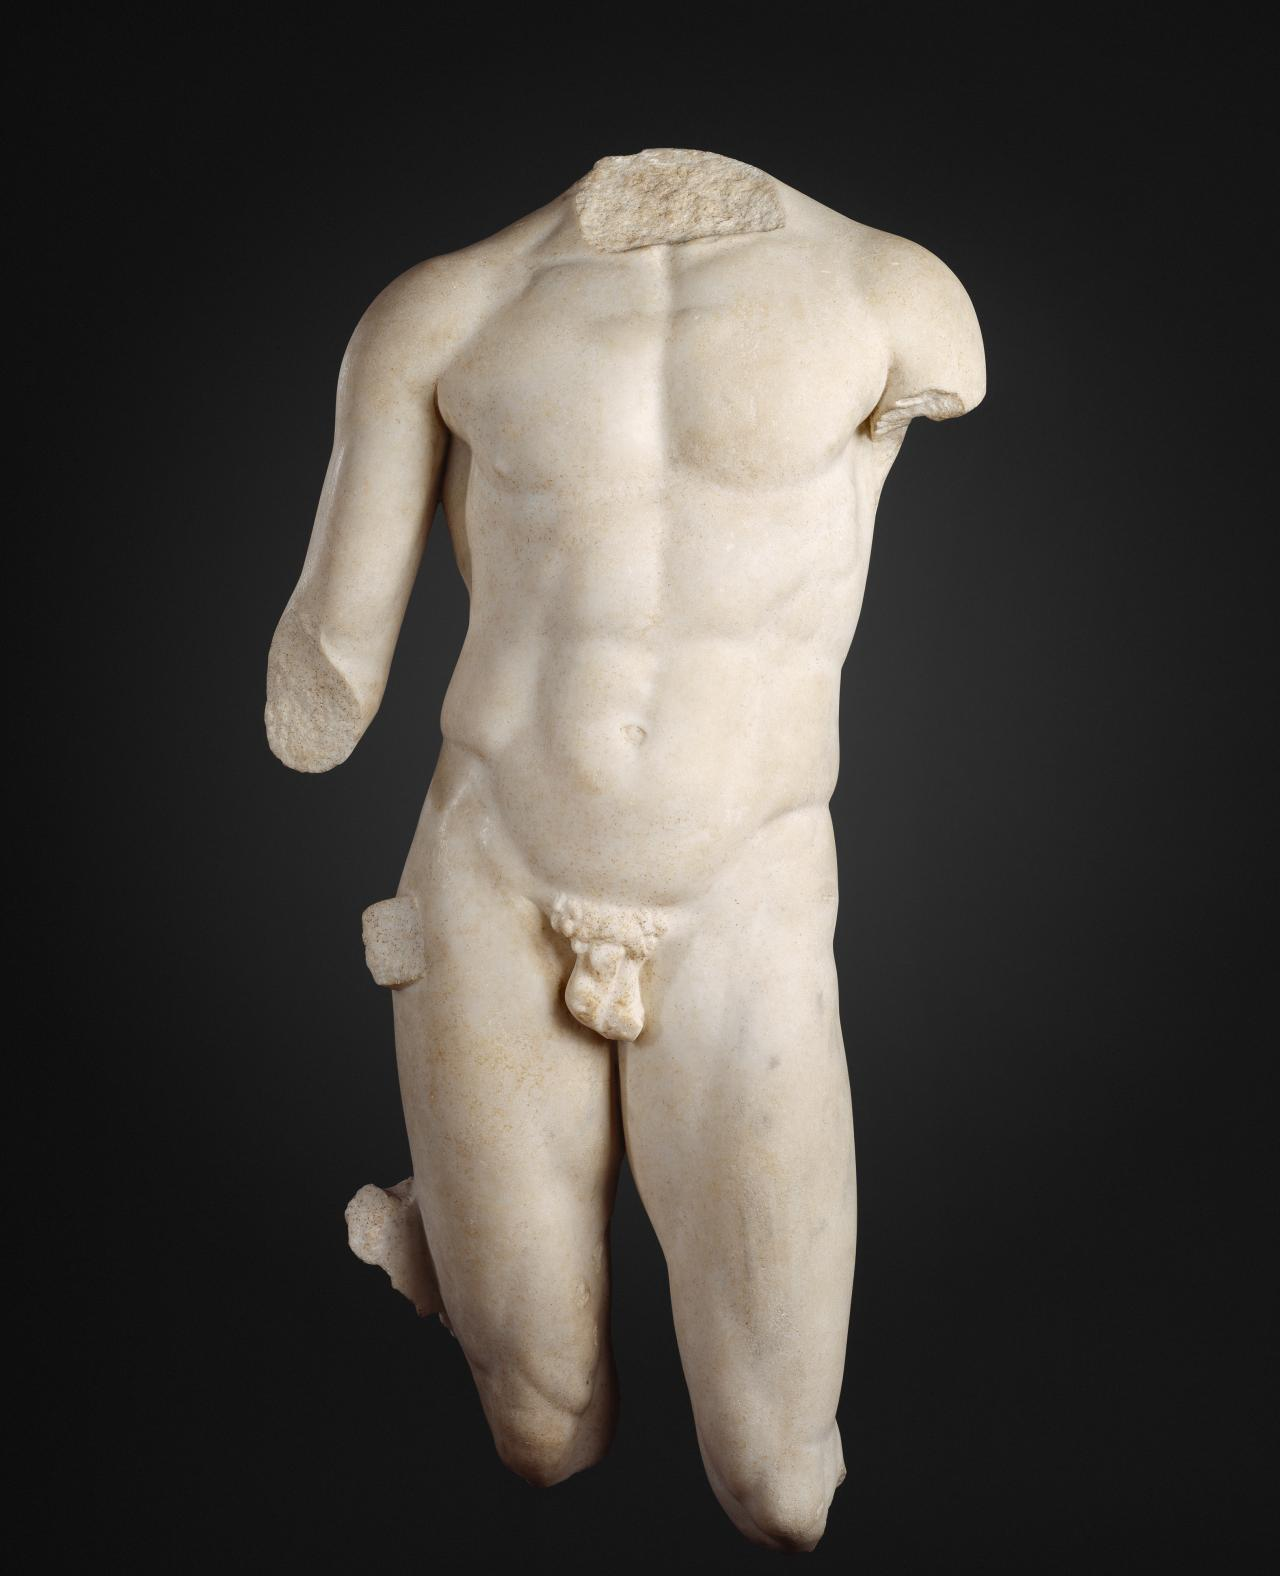 GREECE / ITALY Torso of an athlete 1st century BCE-1st century CE